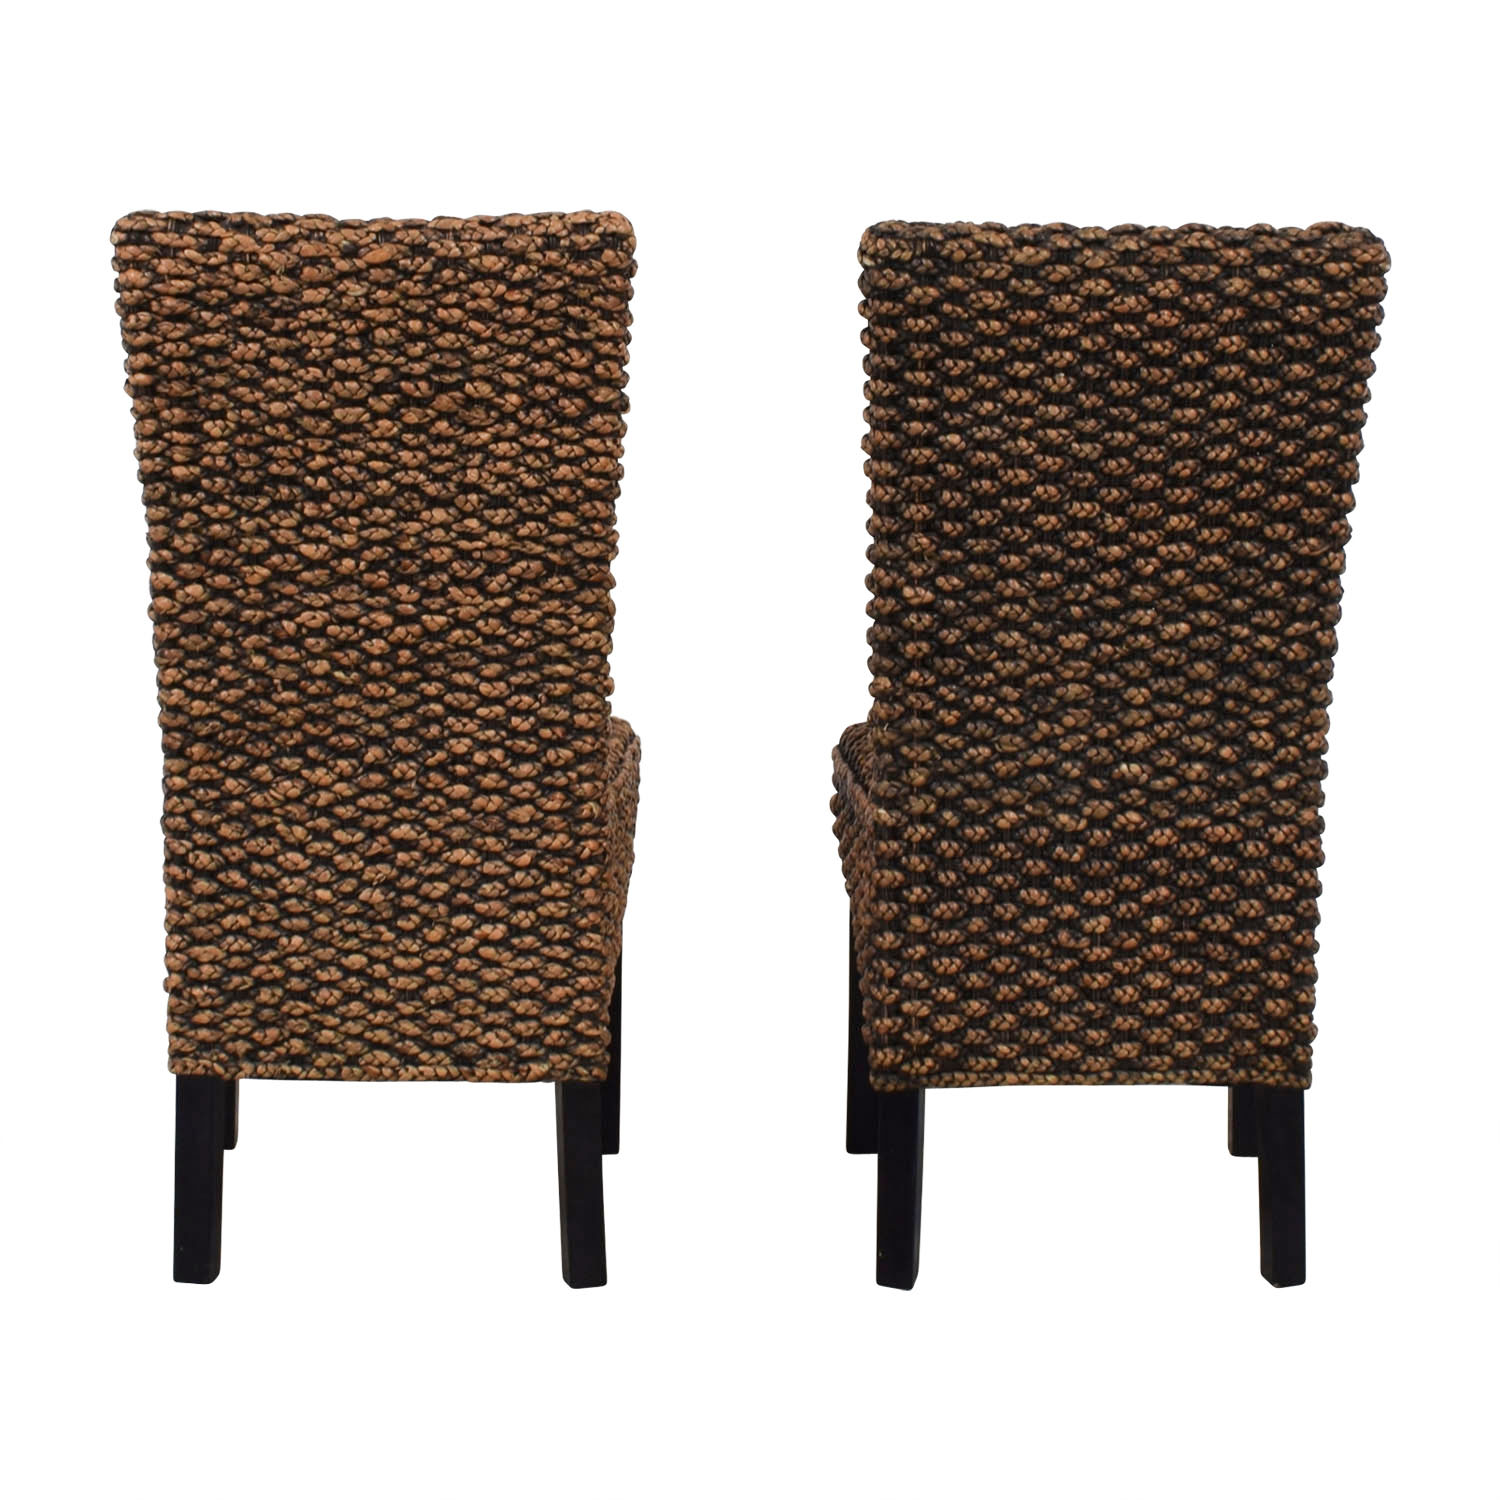 Beachcrest Home Beachcrest Home Anaya Wicker Dining Chairs Black, Gold